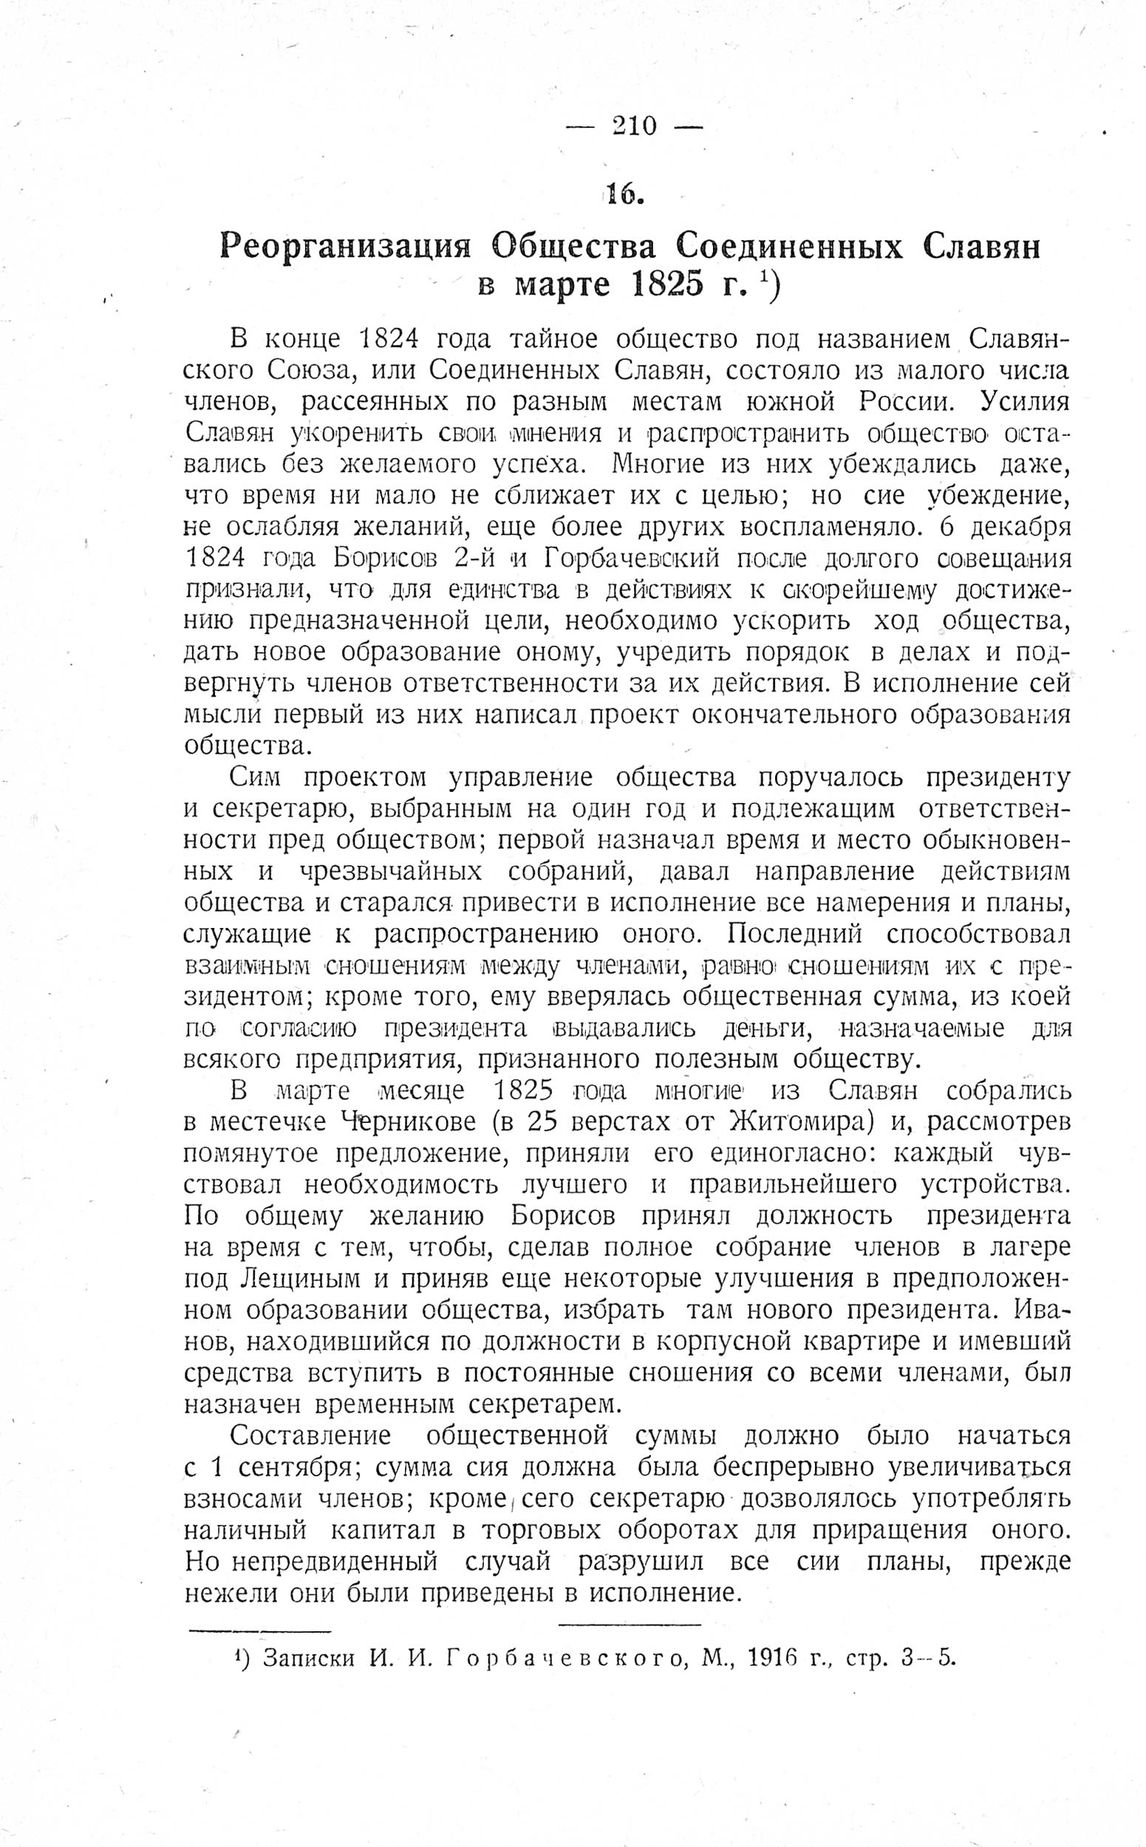 http://elib.shpl.ru/pages/625793/zooms/7